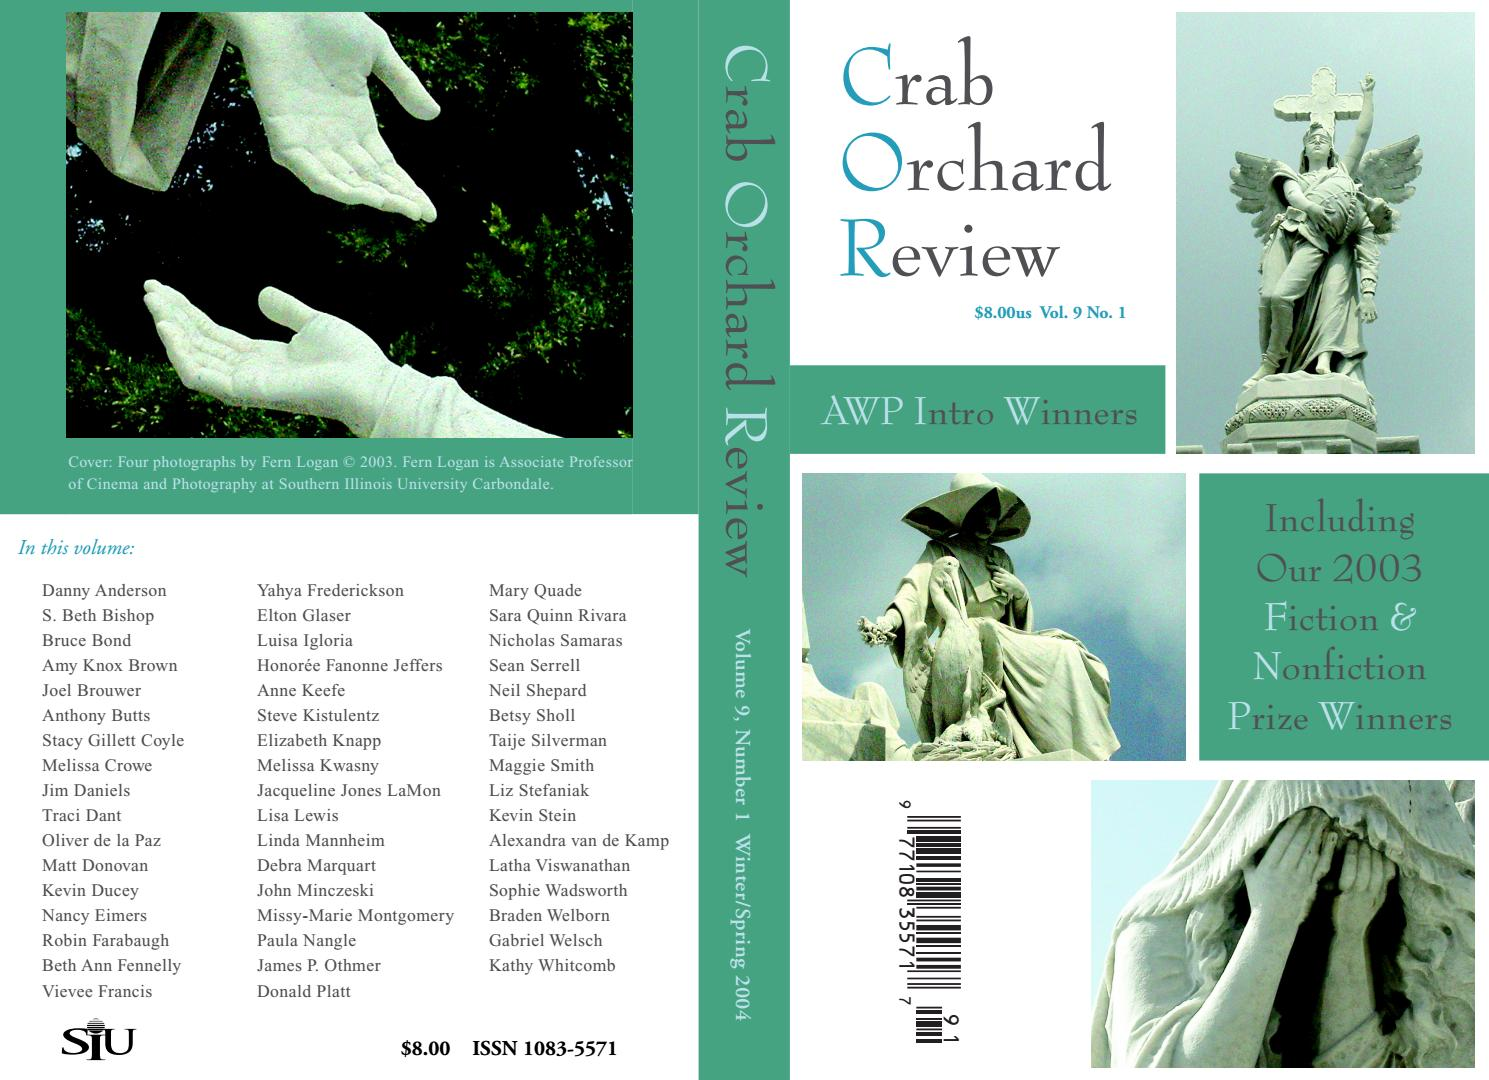 7a8219c7da8a67 Crab Orchard Review Vol 9 No 1 W/S 2004 by Crab Orchard Review - issuu